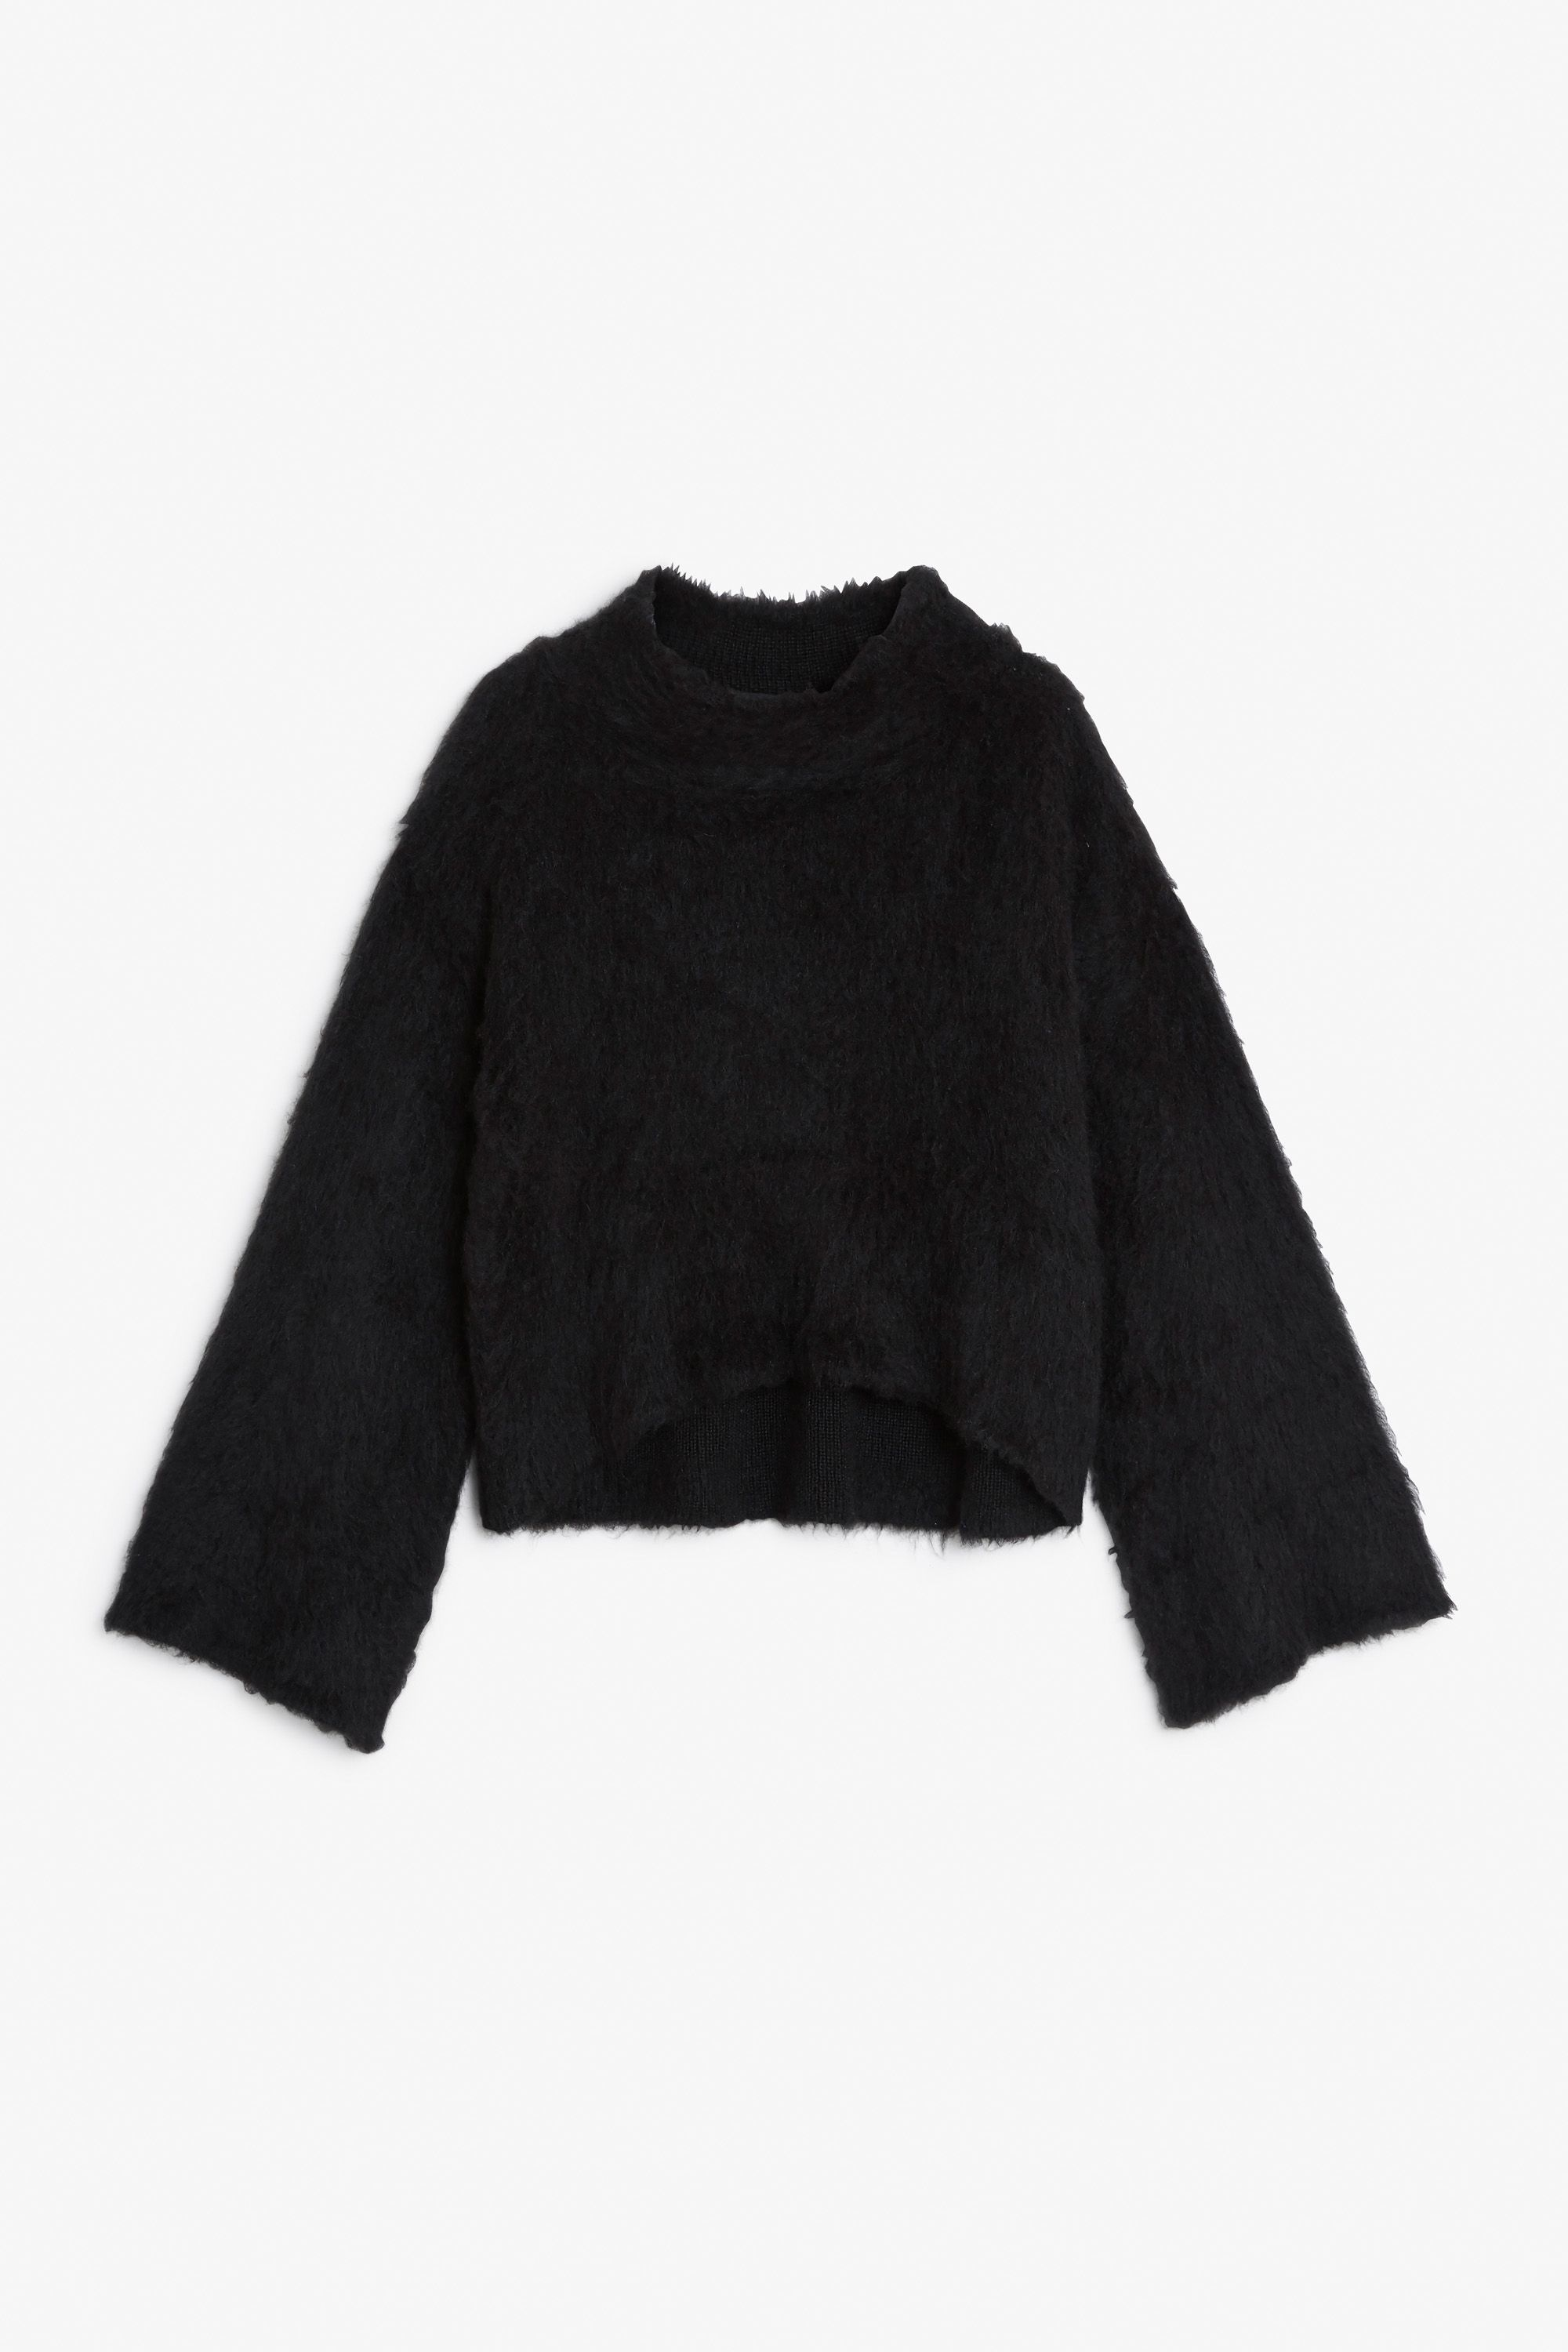 Monki Image 1 of Bell sleeve sweater in Black